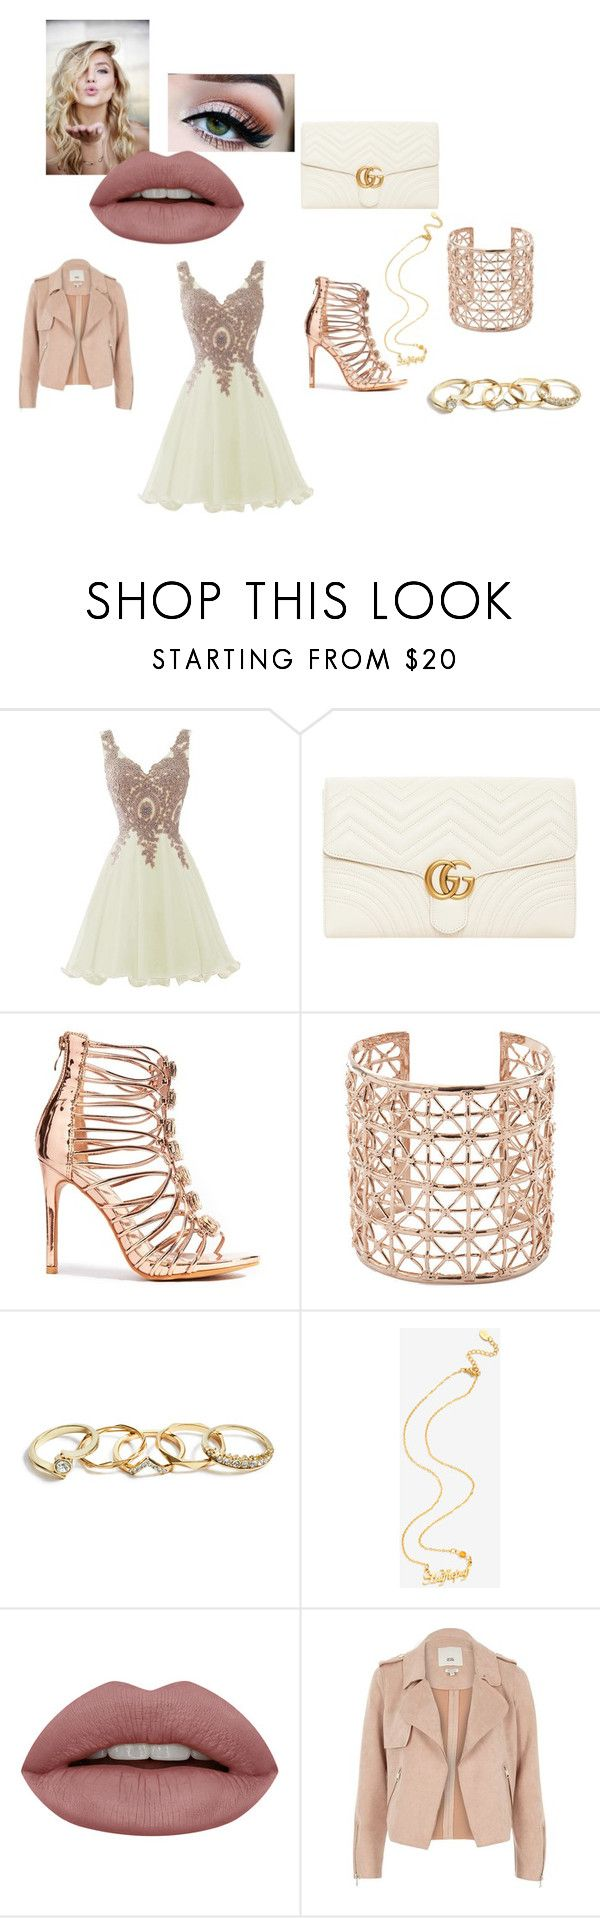 """""""the winter ball"""" by shannon-tilley on Polyvore featuring Gucci, Co.Ro, GUESS, Warner Bros. and River Island"""